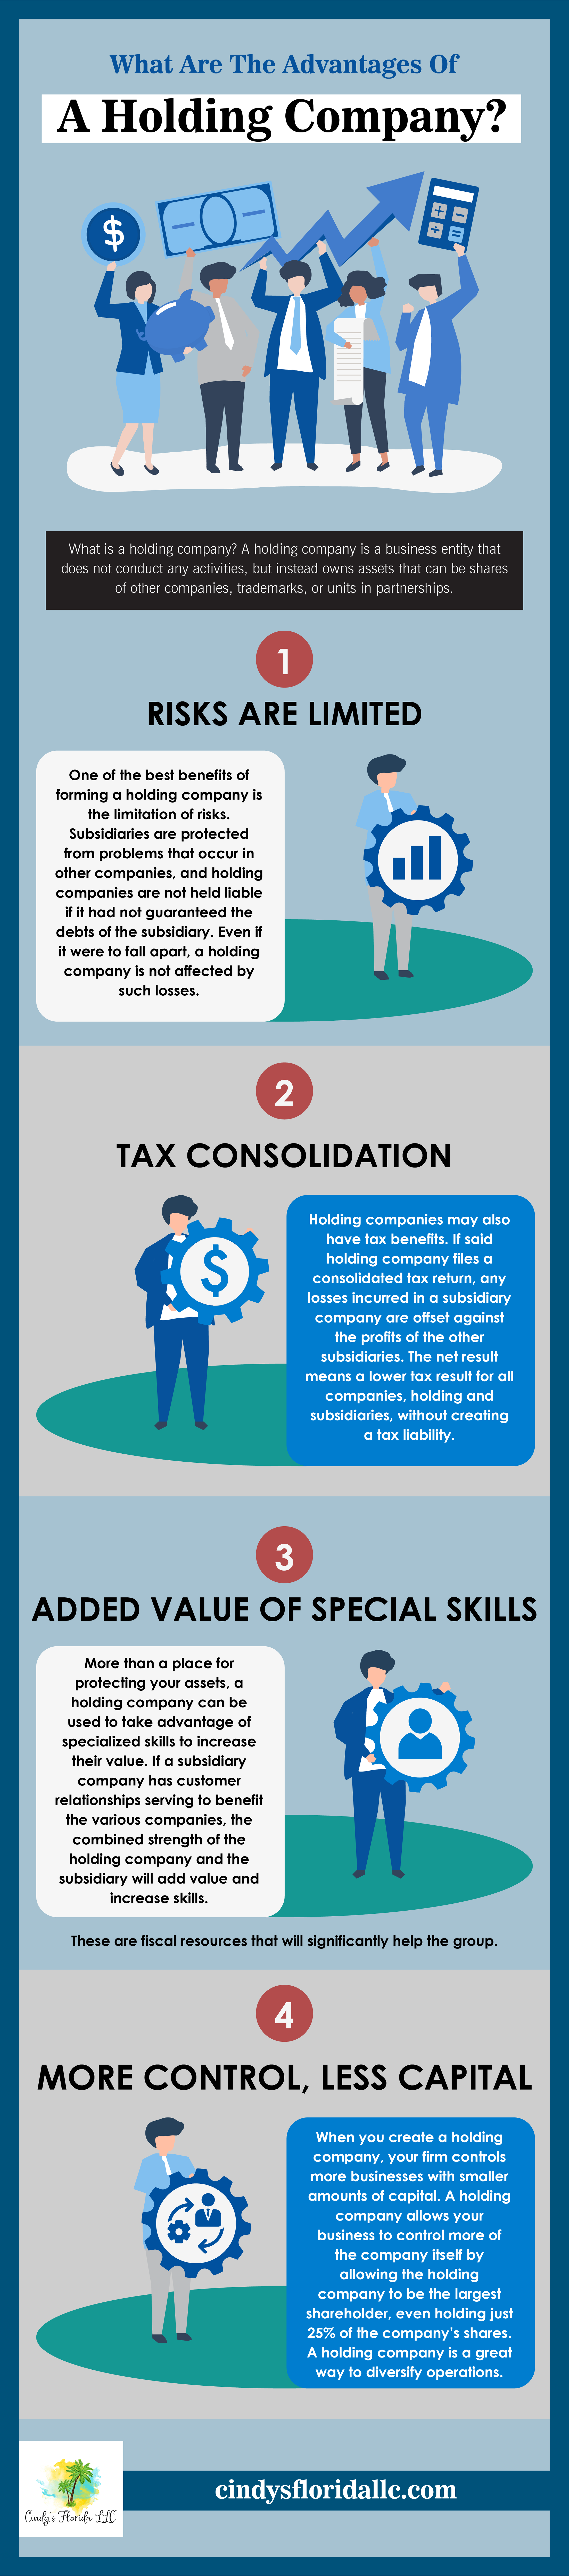 What Are The Advantages of a Holding Company?